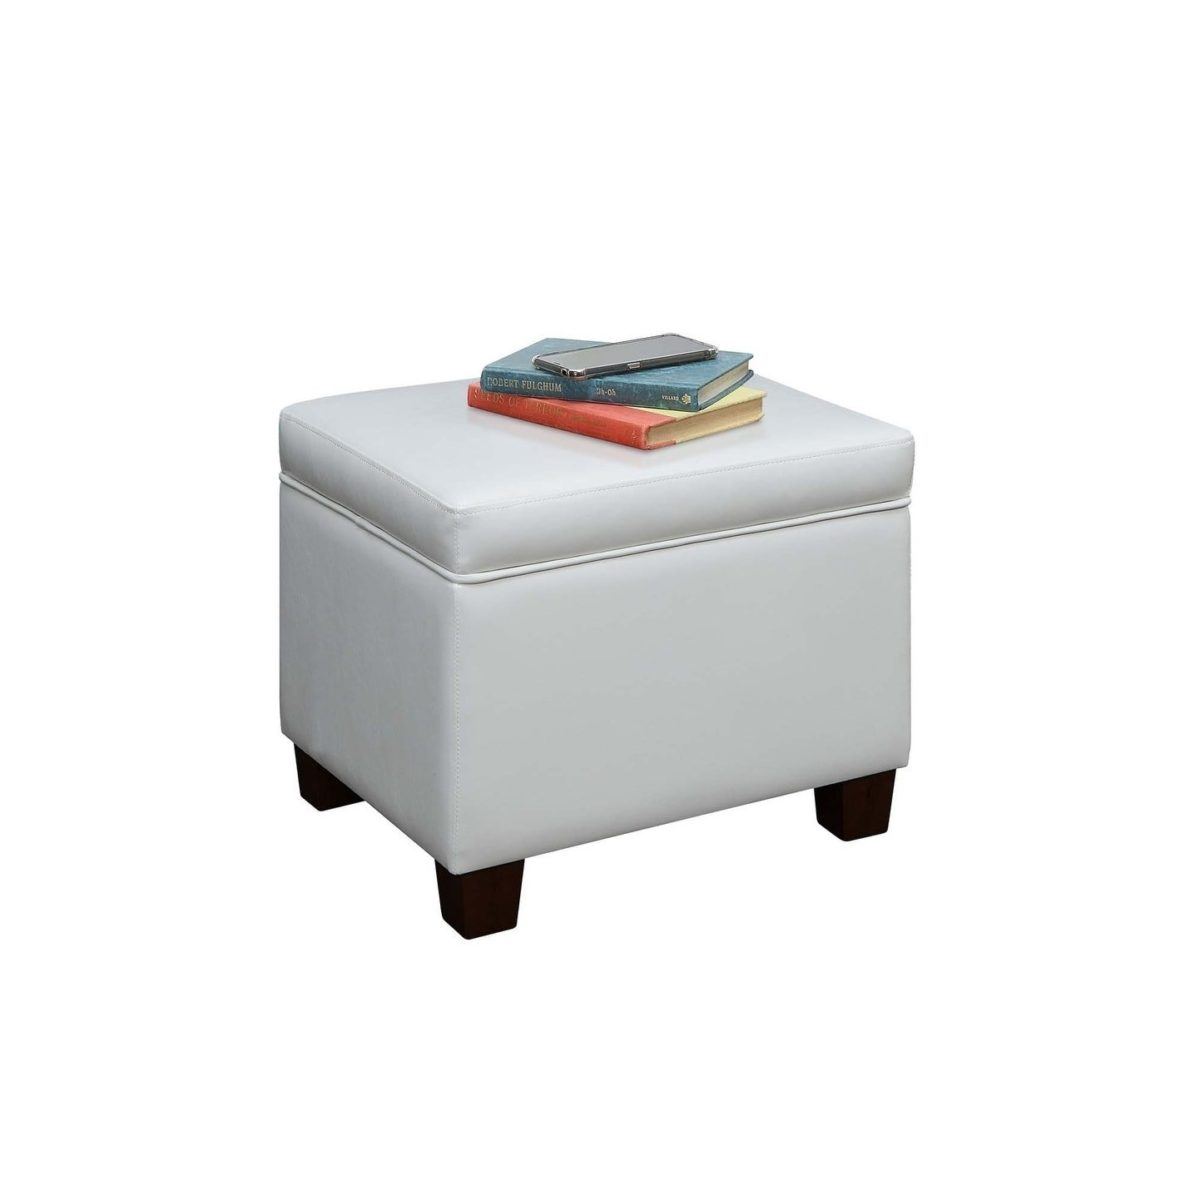 storage ottoman,Get your home furniture including, Sofa, Bed, Sectional Sofa, Wardrobe, night stand, couches, dressing table Ottoman, Living Room Furniture.Sectional sofa, dubai furniture,furniture store near me, online furniture store, home furniture, best furniture in dubai, accent chair, armless chair, online furniture store in dubai, office furniture